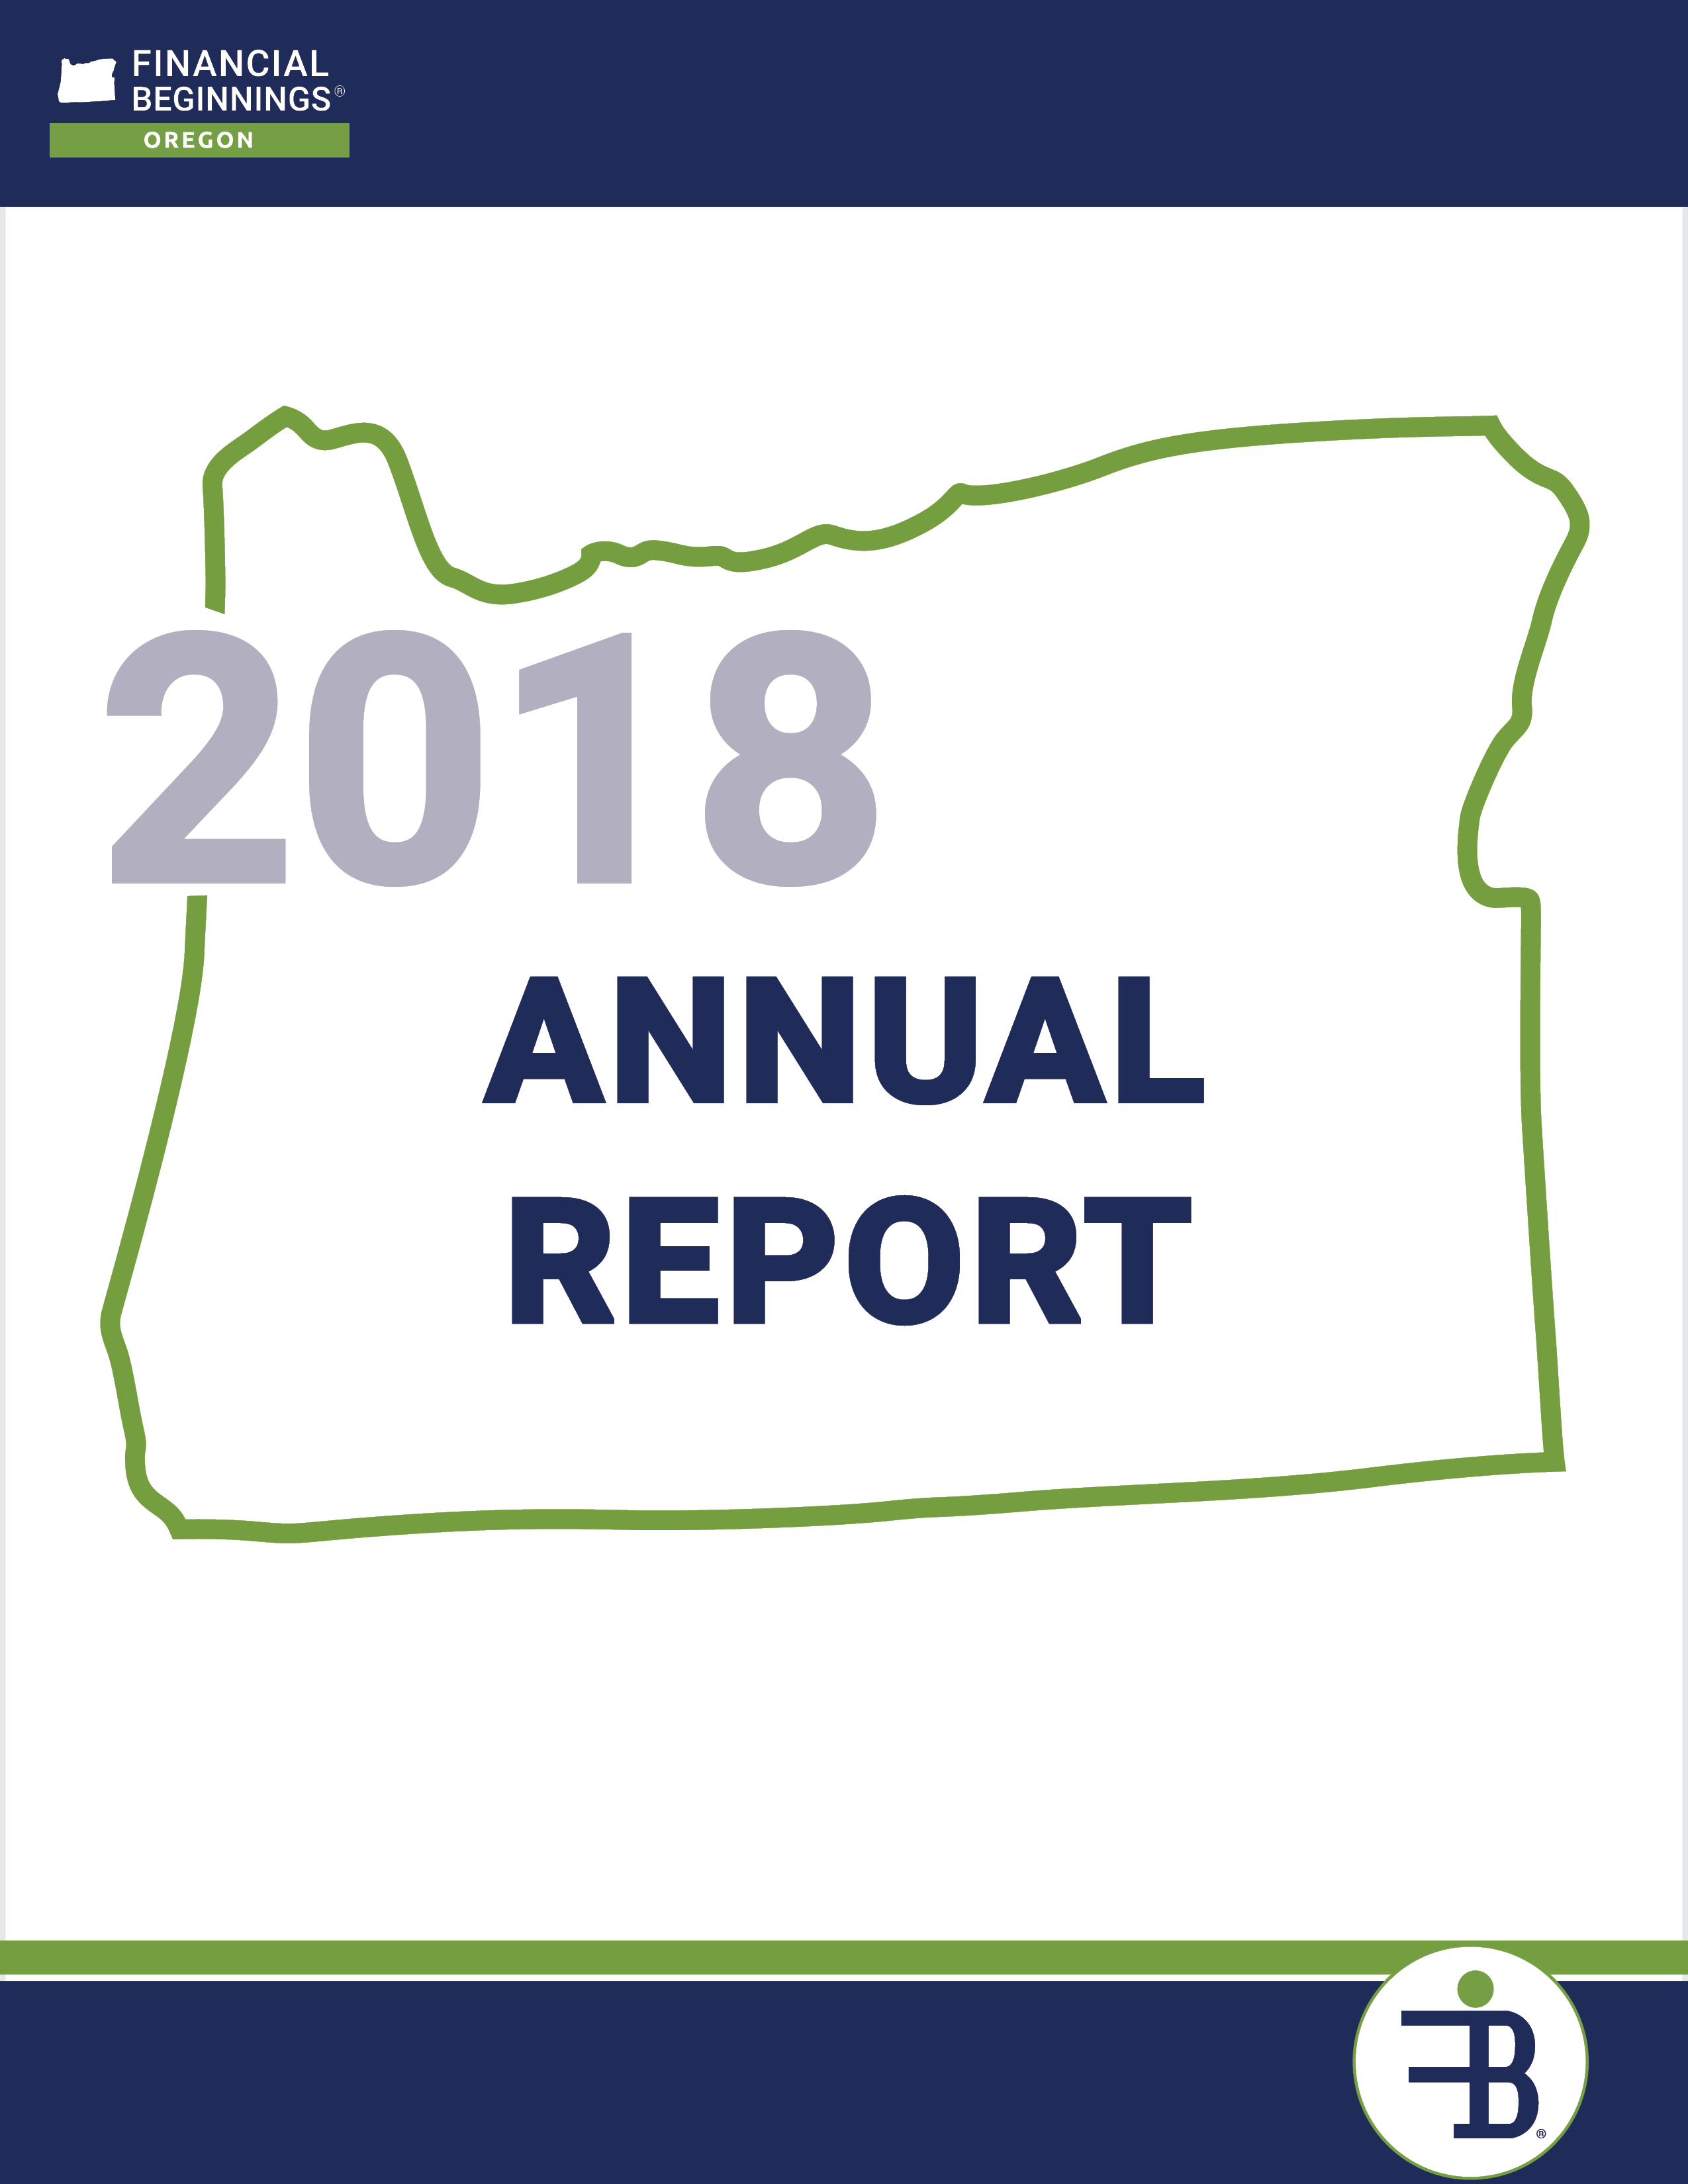 Financial Beginnings Oregon 2018 Annual Report